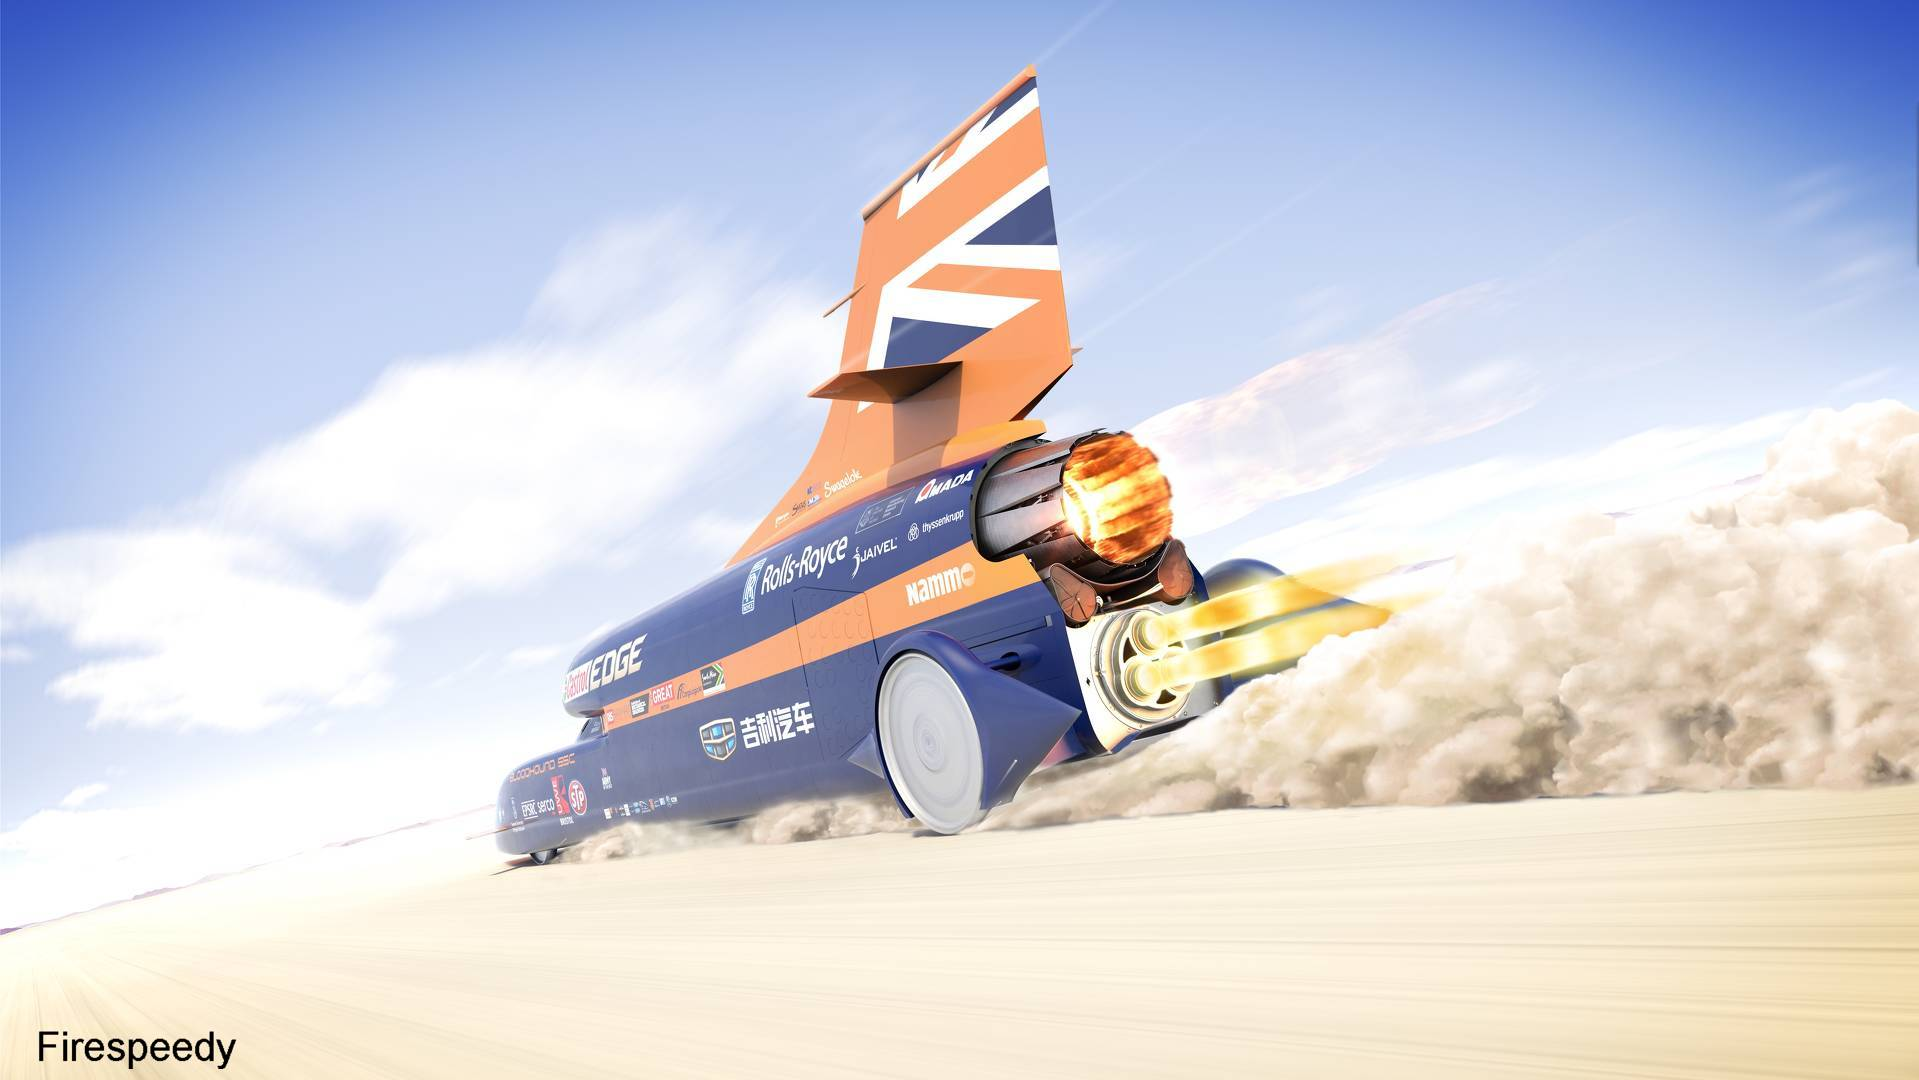 Bloodhound SSC | Fastest Car in the World 2020 (Land Speed Record)